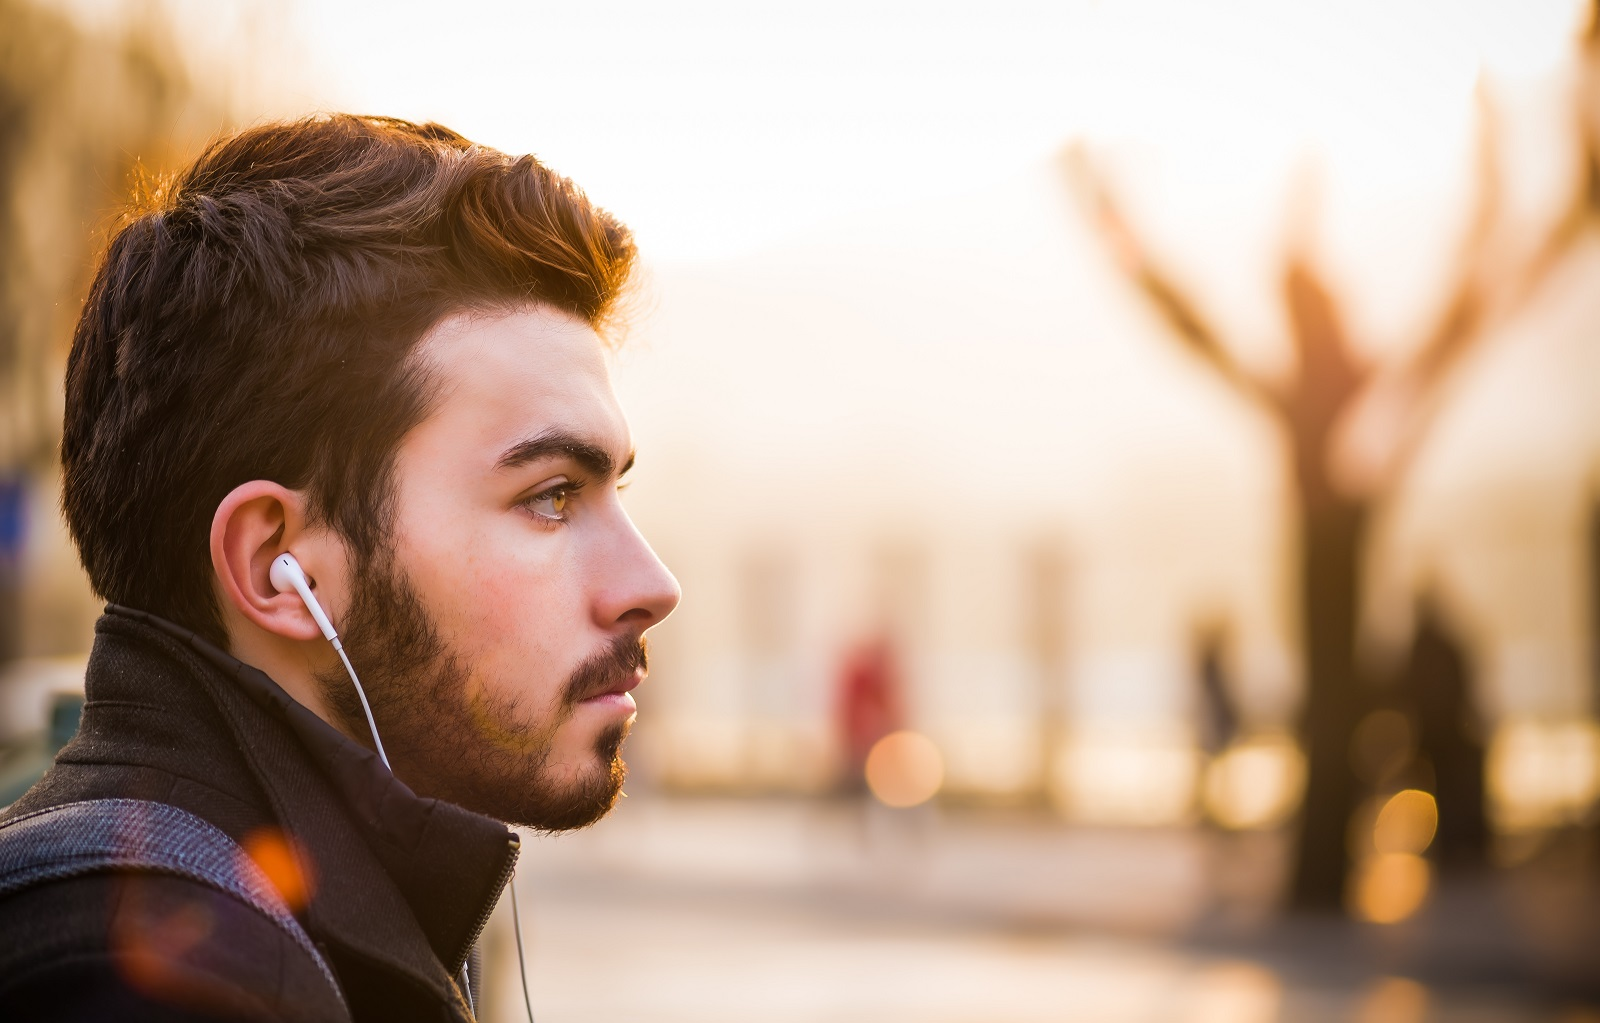 Stuck in traffic? 7 podcasts you can check out now